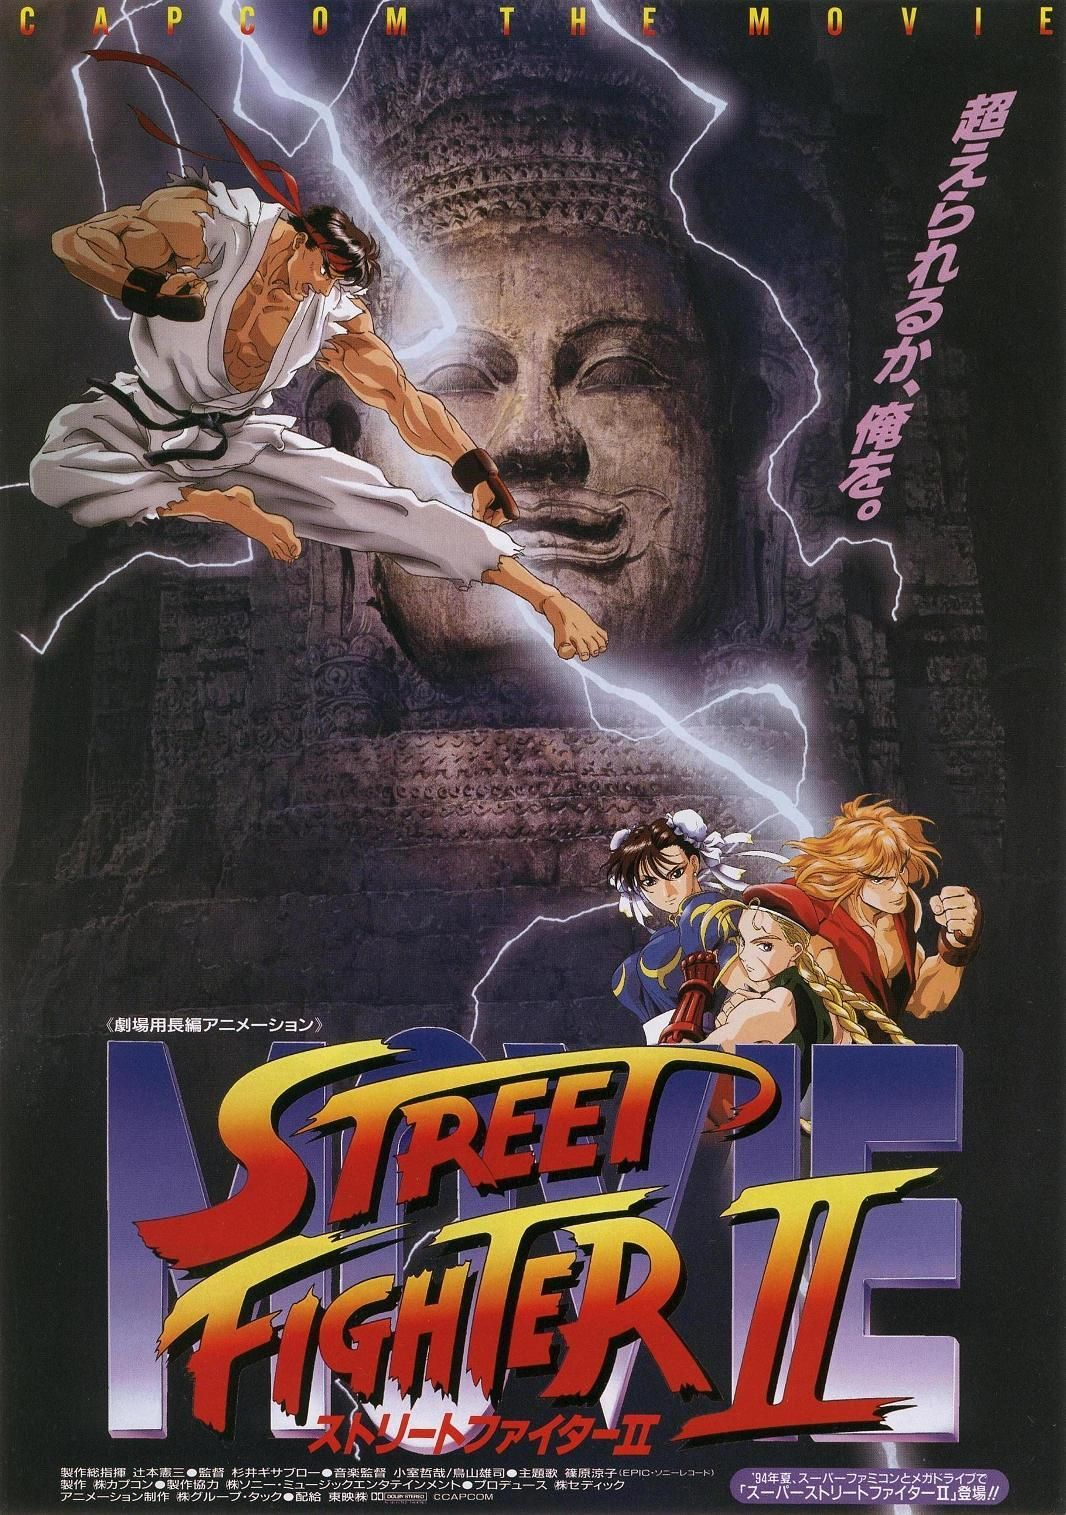 This year marks the Street Fighter II series' 25th